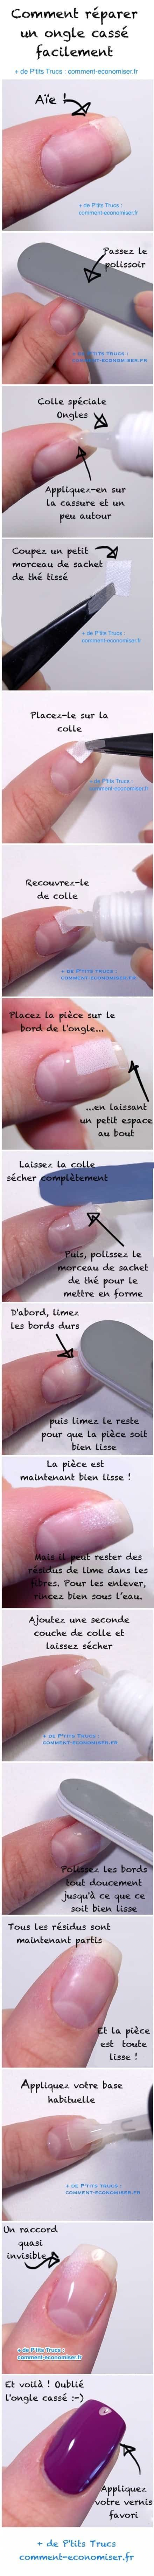 best vernis images on pinterest nail scissors nail design and